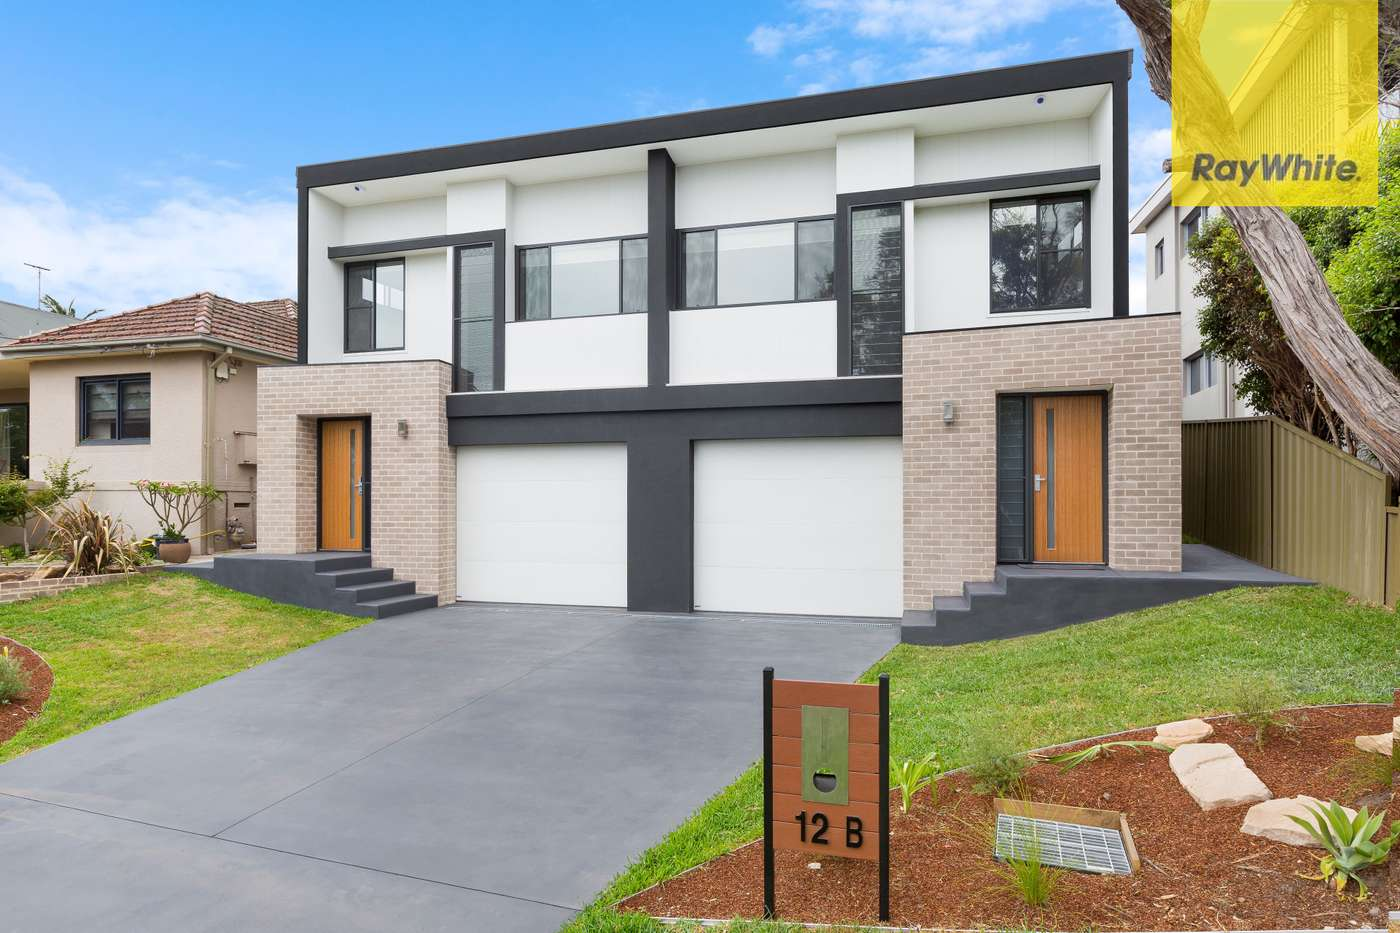 Main view of Homely semidetached listing, 12B Fairs Avenue, Woolooware, NSW 2230